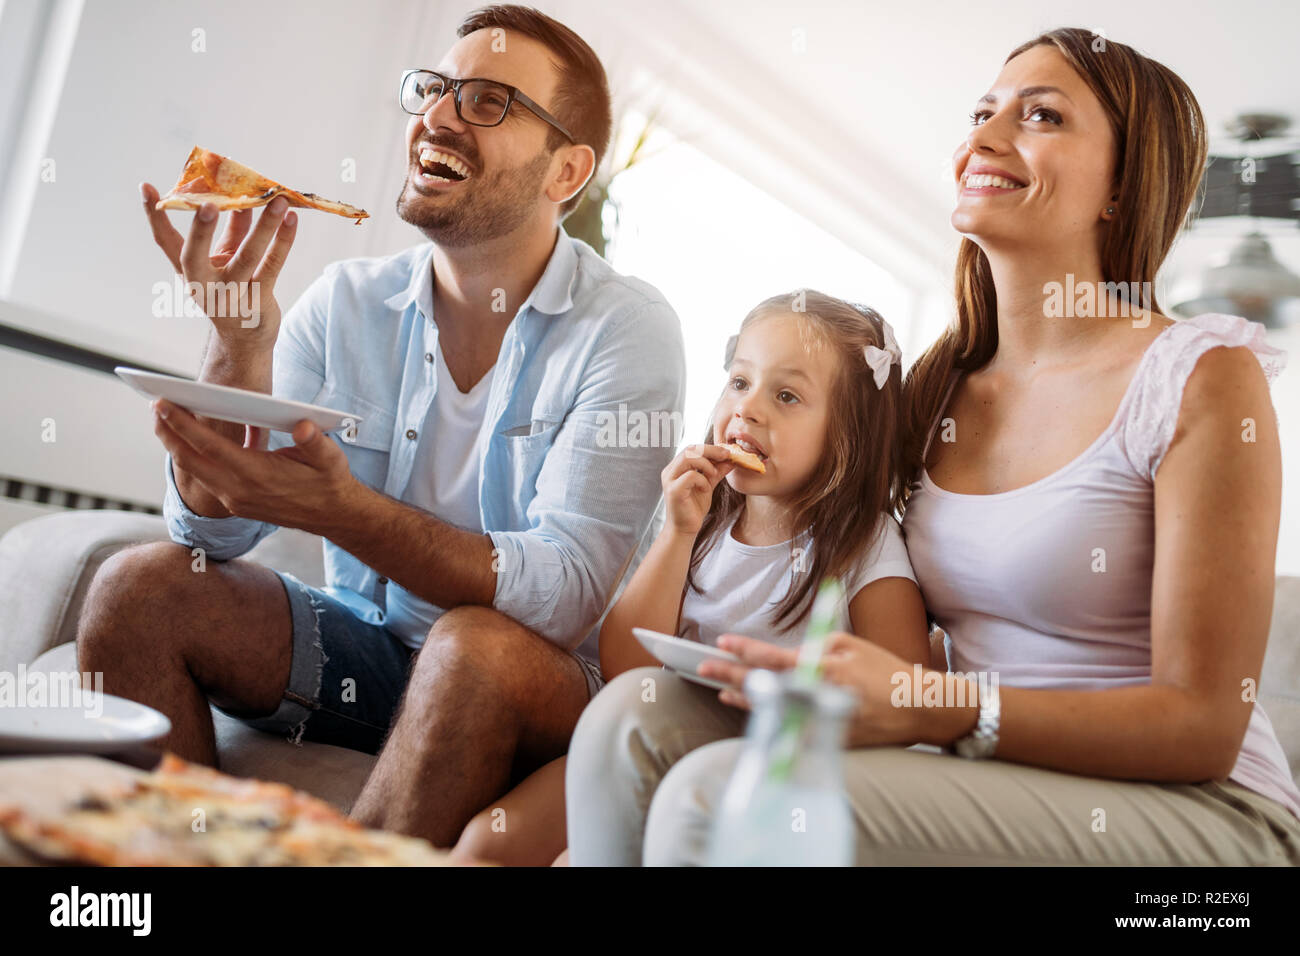 Portrait of happy family sharing pizza at home - Stock Image